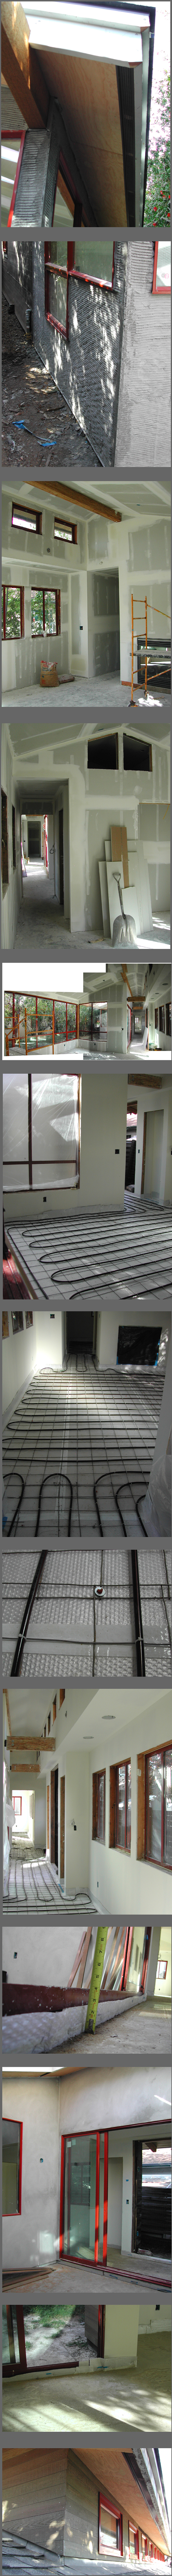 Faculty House, ENR architects with Topos Architects, Palo Alto, CA 94306 - Hydronic Floors